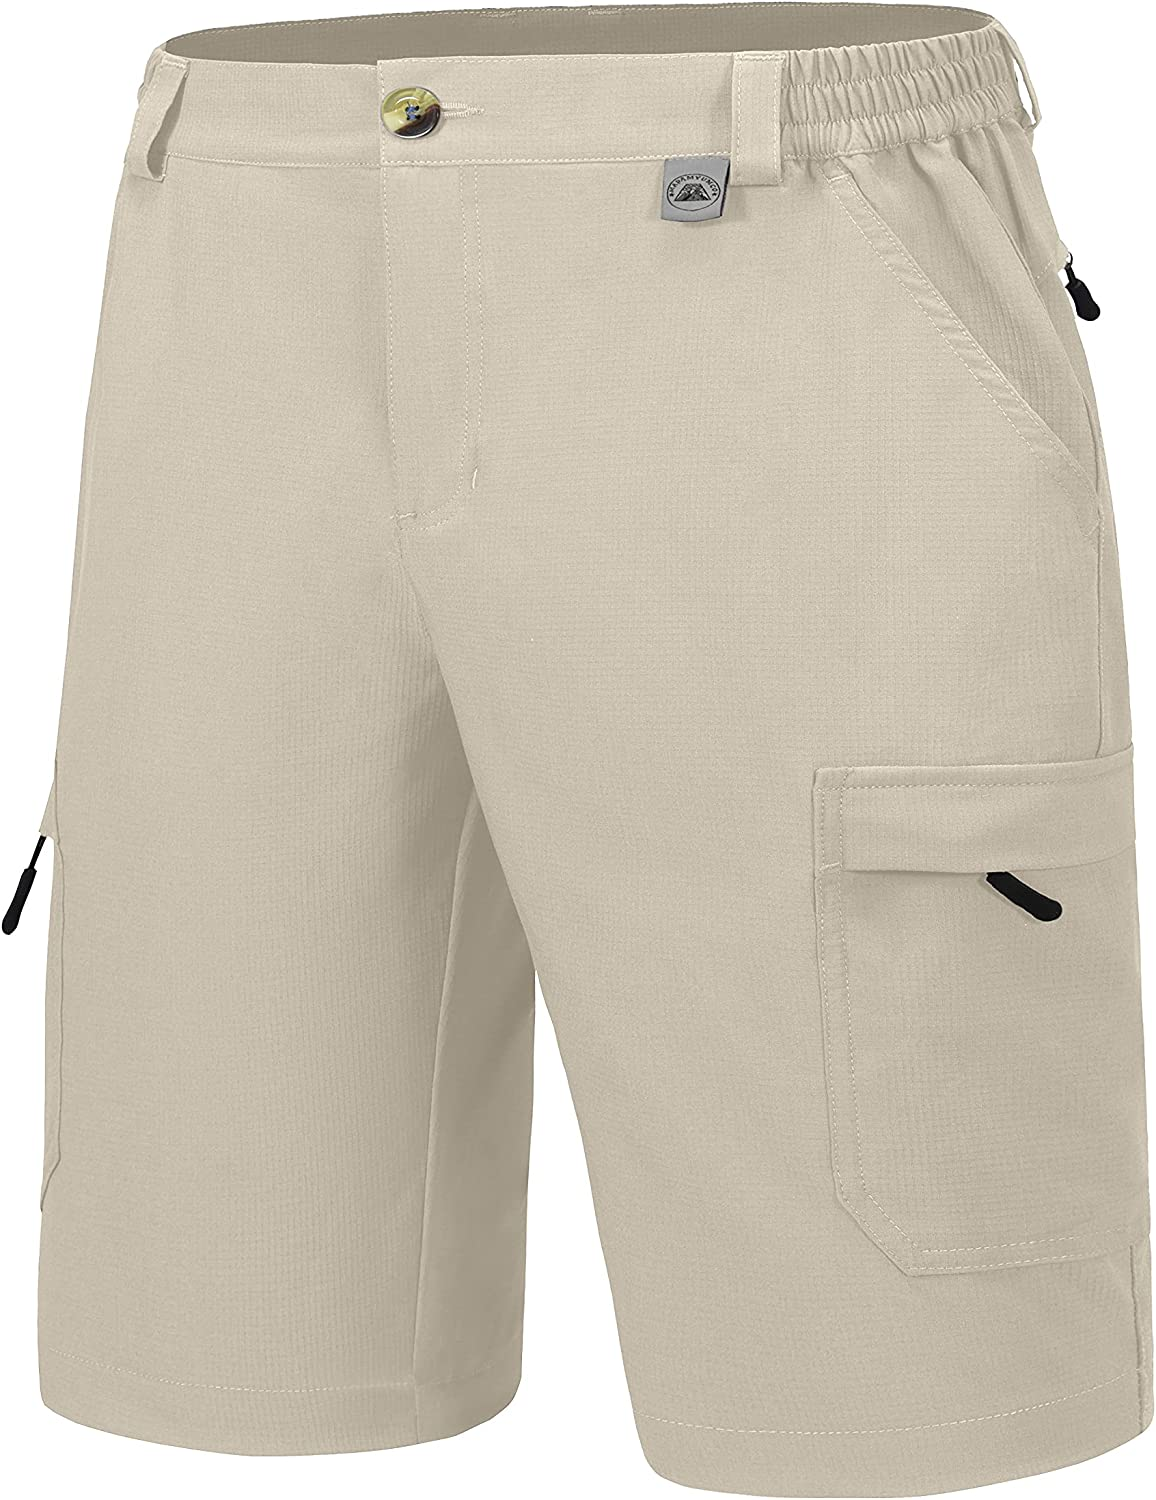 Mapamyumco Men's Ranking TOP2 Quick Dry Stretch Hiking Shorts Inch Cargo 10 SEAL limited product L